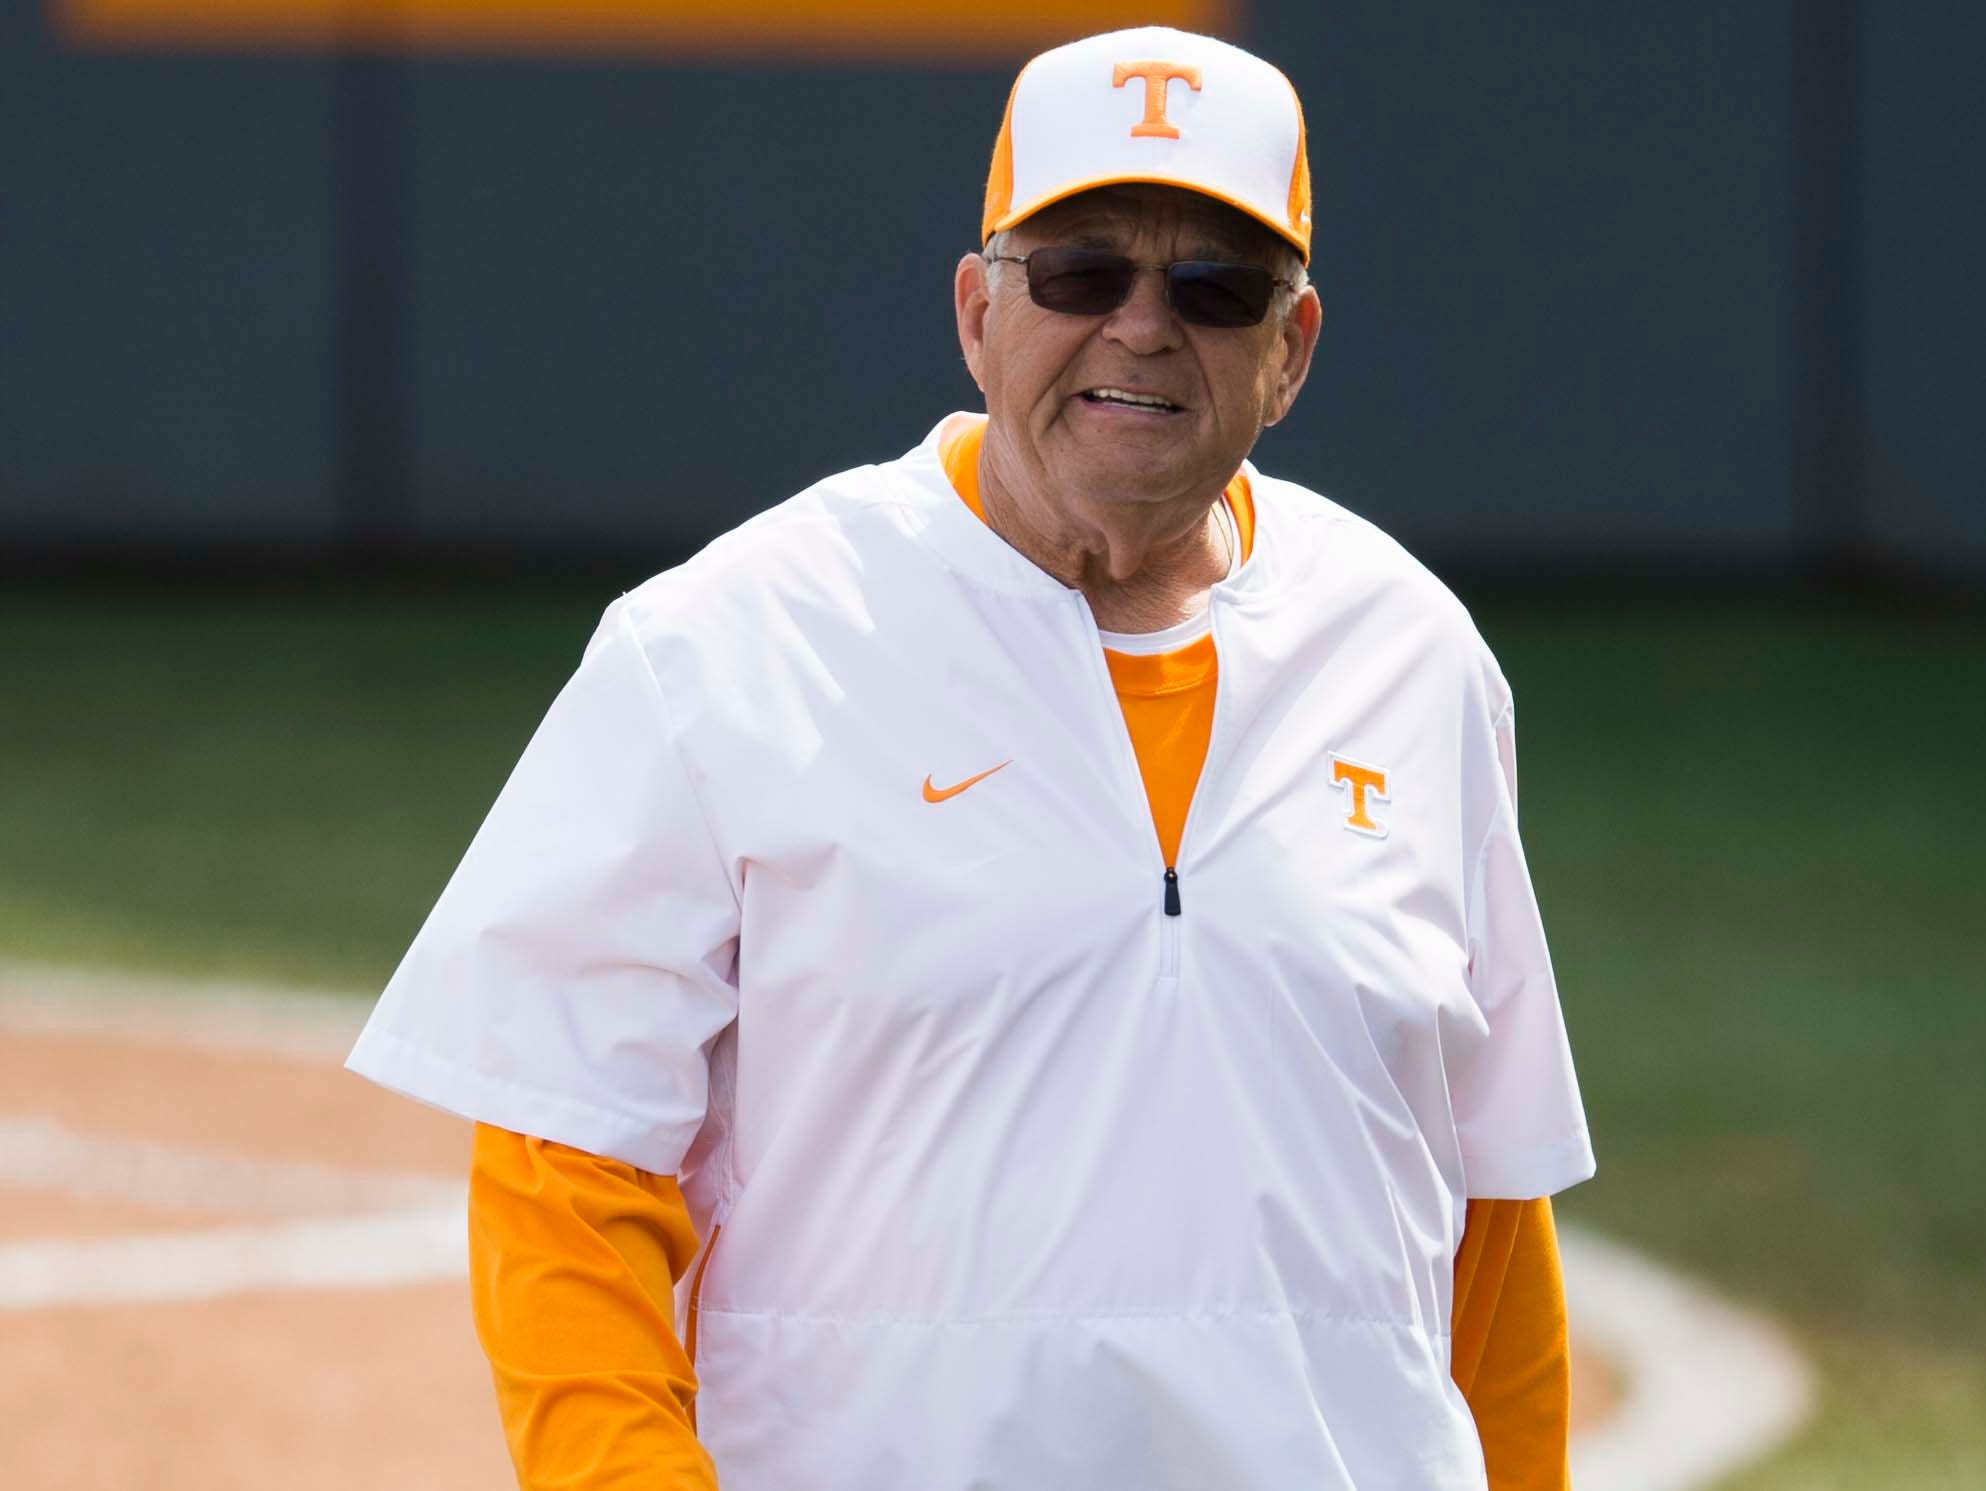 Tennessee co-head coach Ralph Weekly walks off the field after a Lady Vols softball game against Arkansas at Sherri Parker Lee stadium on University of Tennessee's campus in Knoxville Sunday, March 24, 2019. The Lady Vols defeated Arkansas.